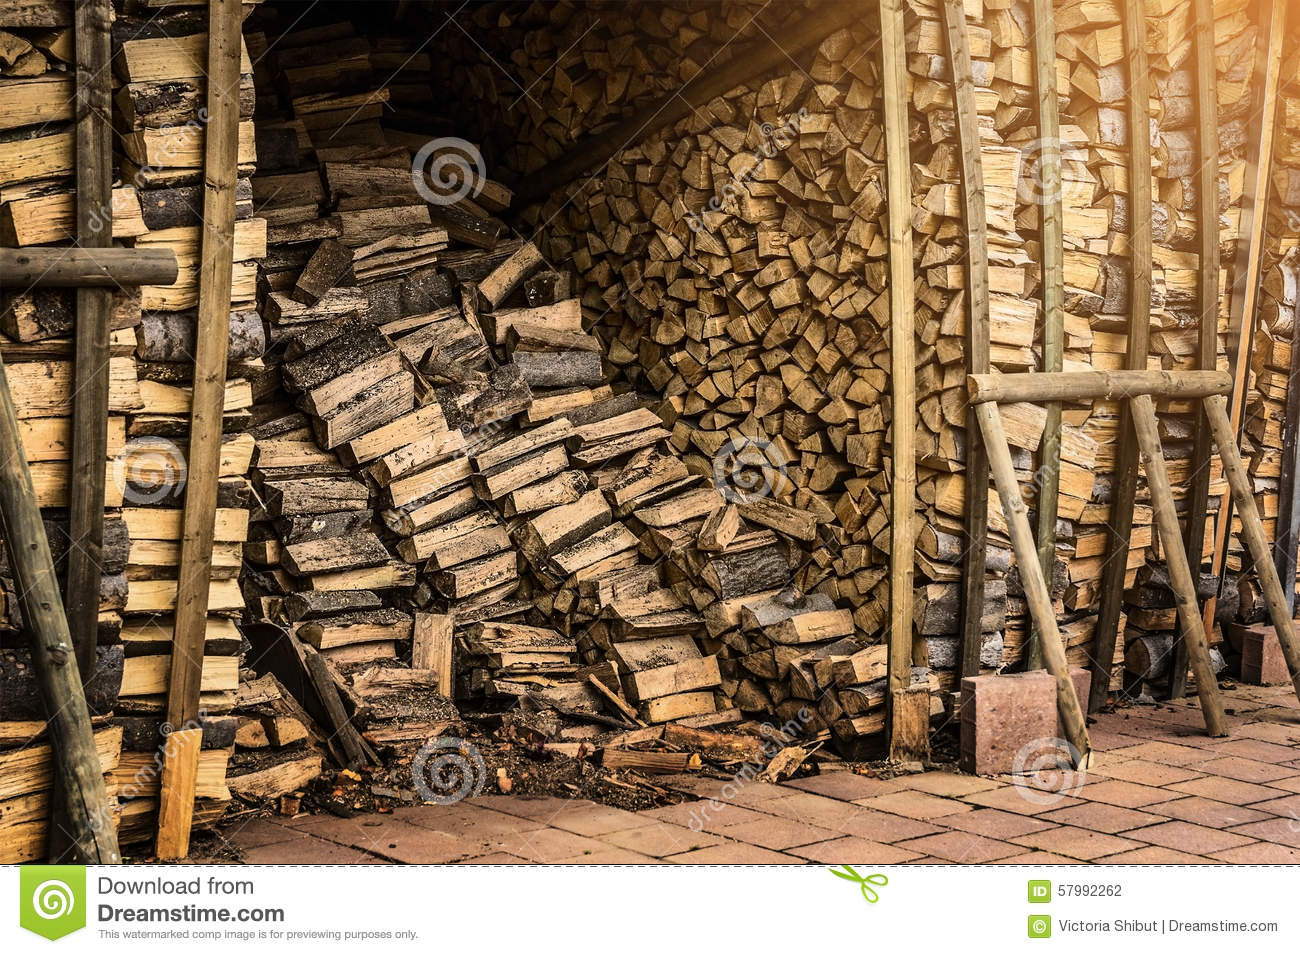 Shed with fire wood for the fireplace - Shed With Fire Wood For The Fireplace Stock Photo - Image: 57992262